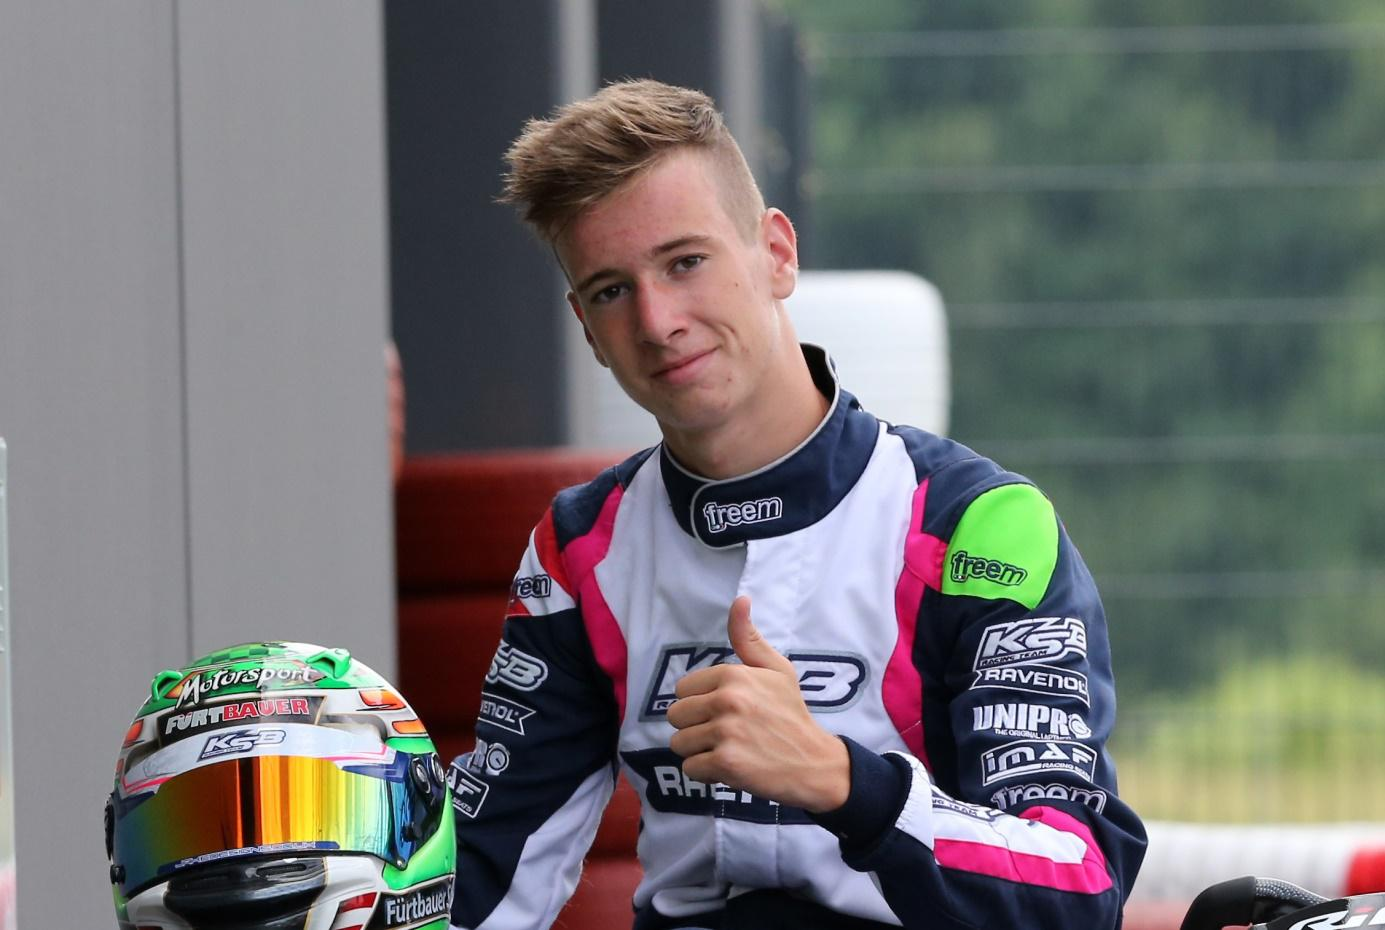 From karts to F4, Stefan Fürtbauer is enjoying his debut season